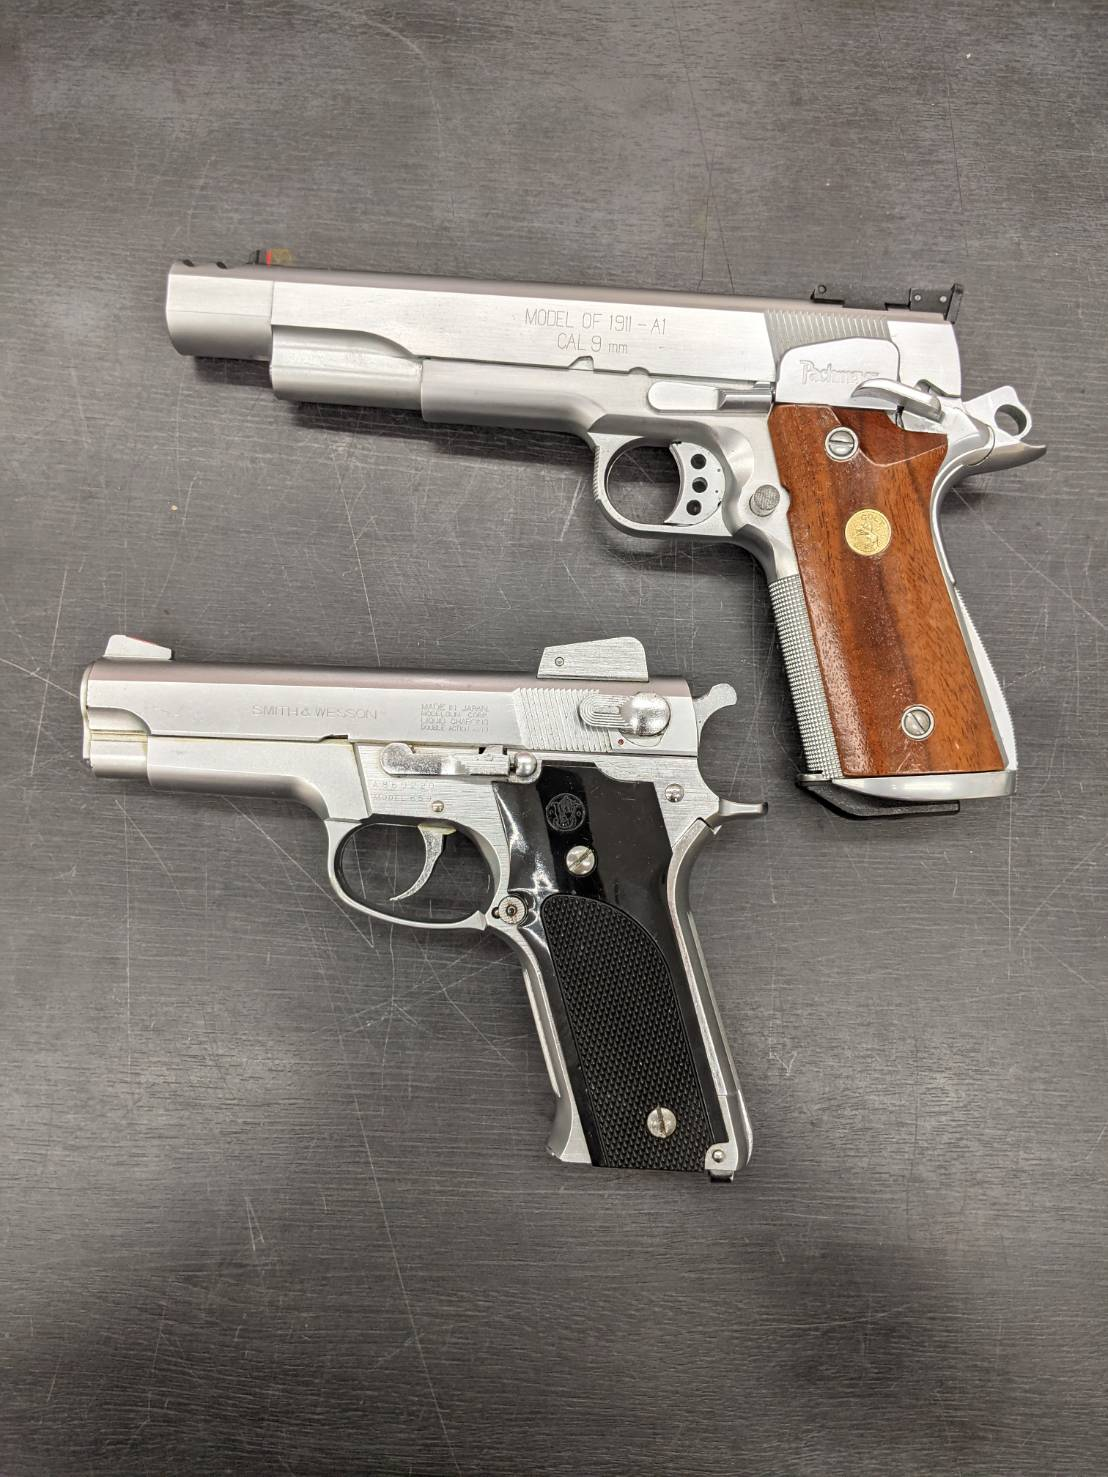 【Pachmayr SPRINGFIELD ARMORY 1911-A1 & SMITH&WESSON MODEL659 】お買い取り致しました!!の買取-